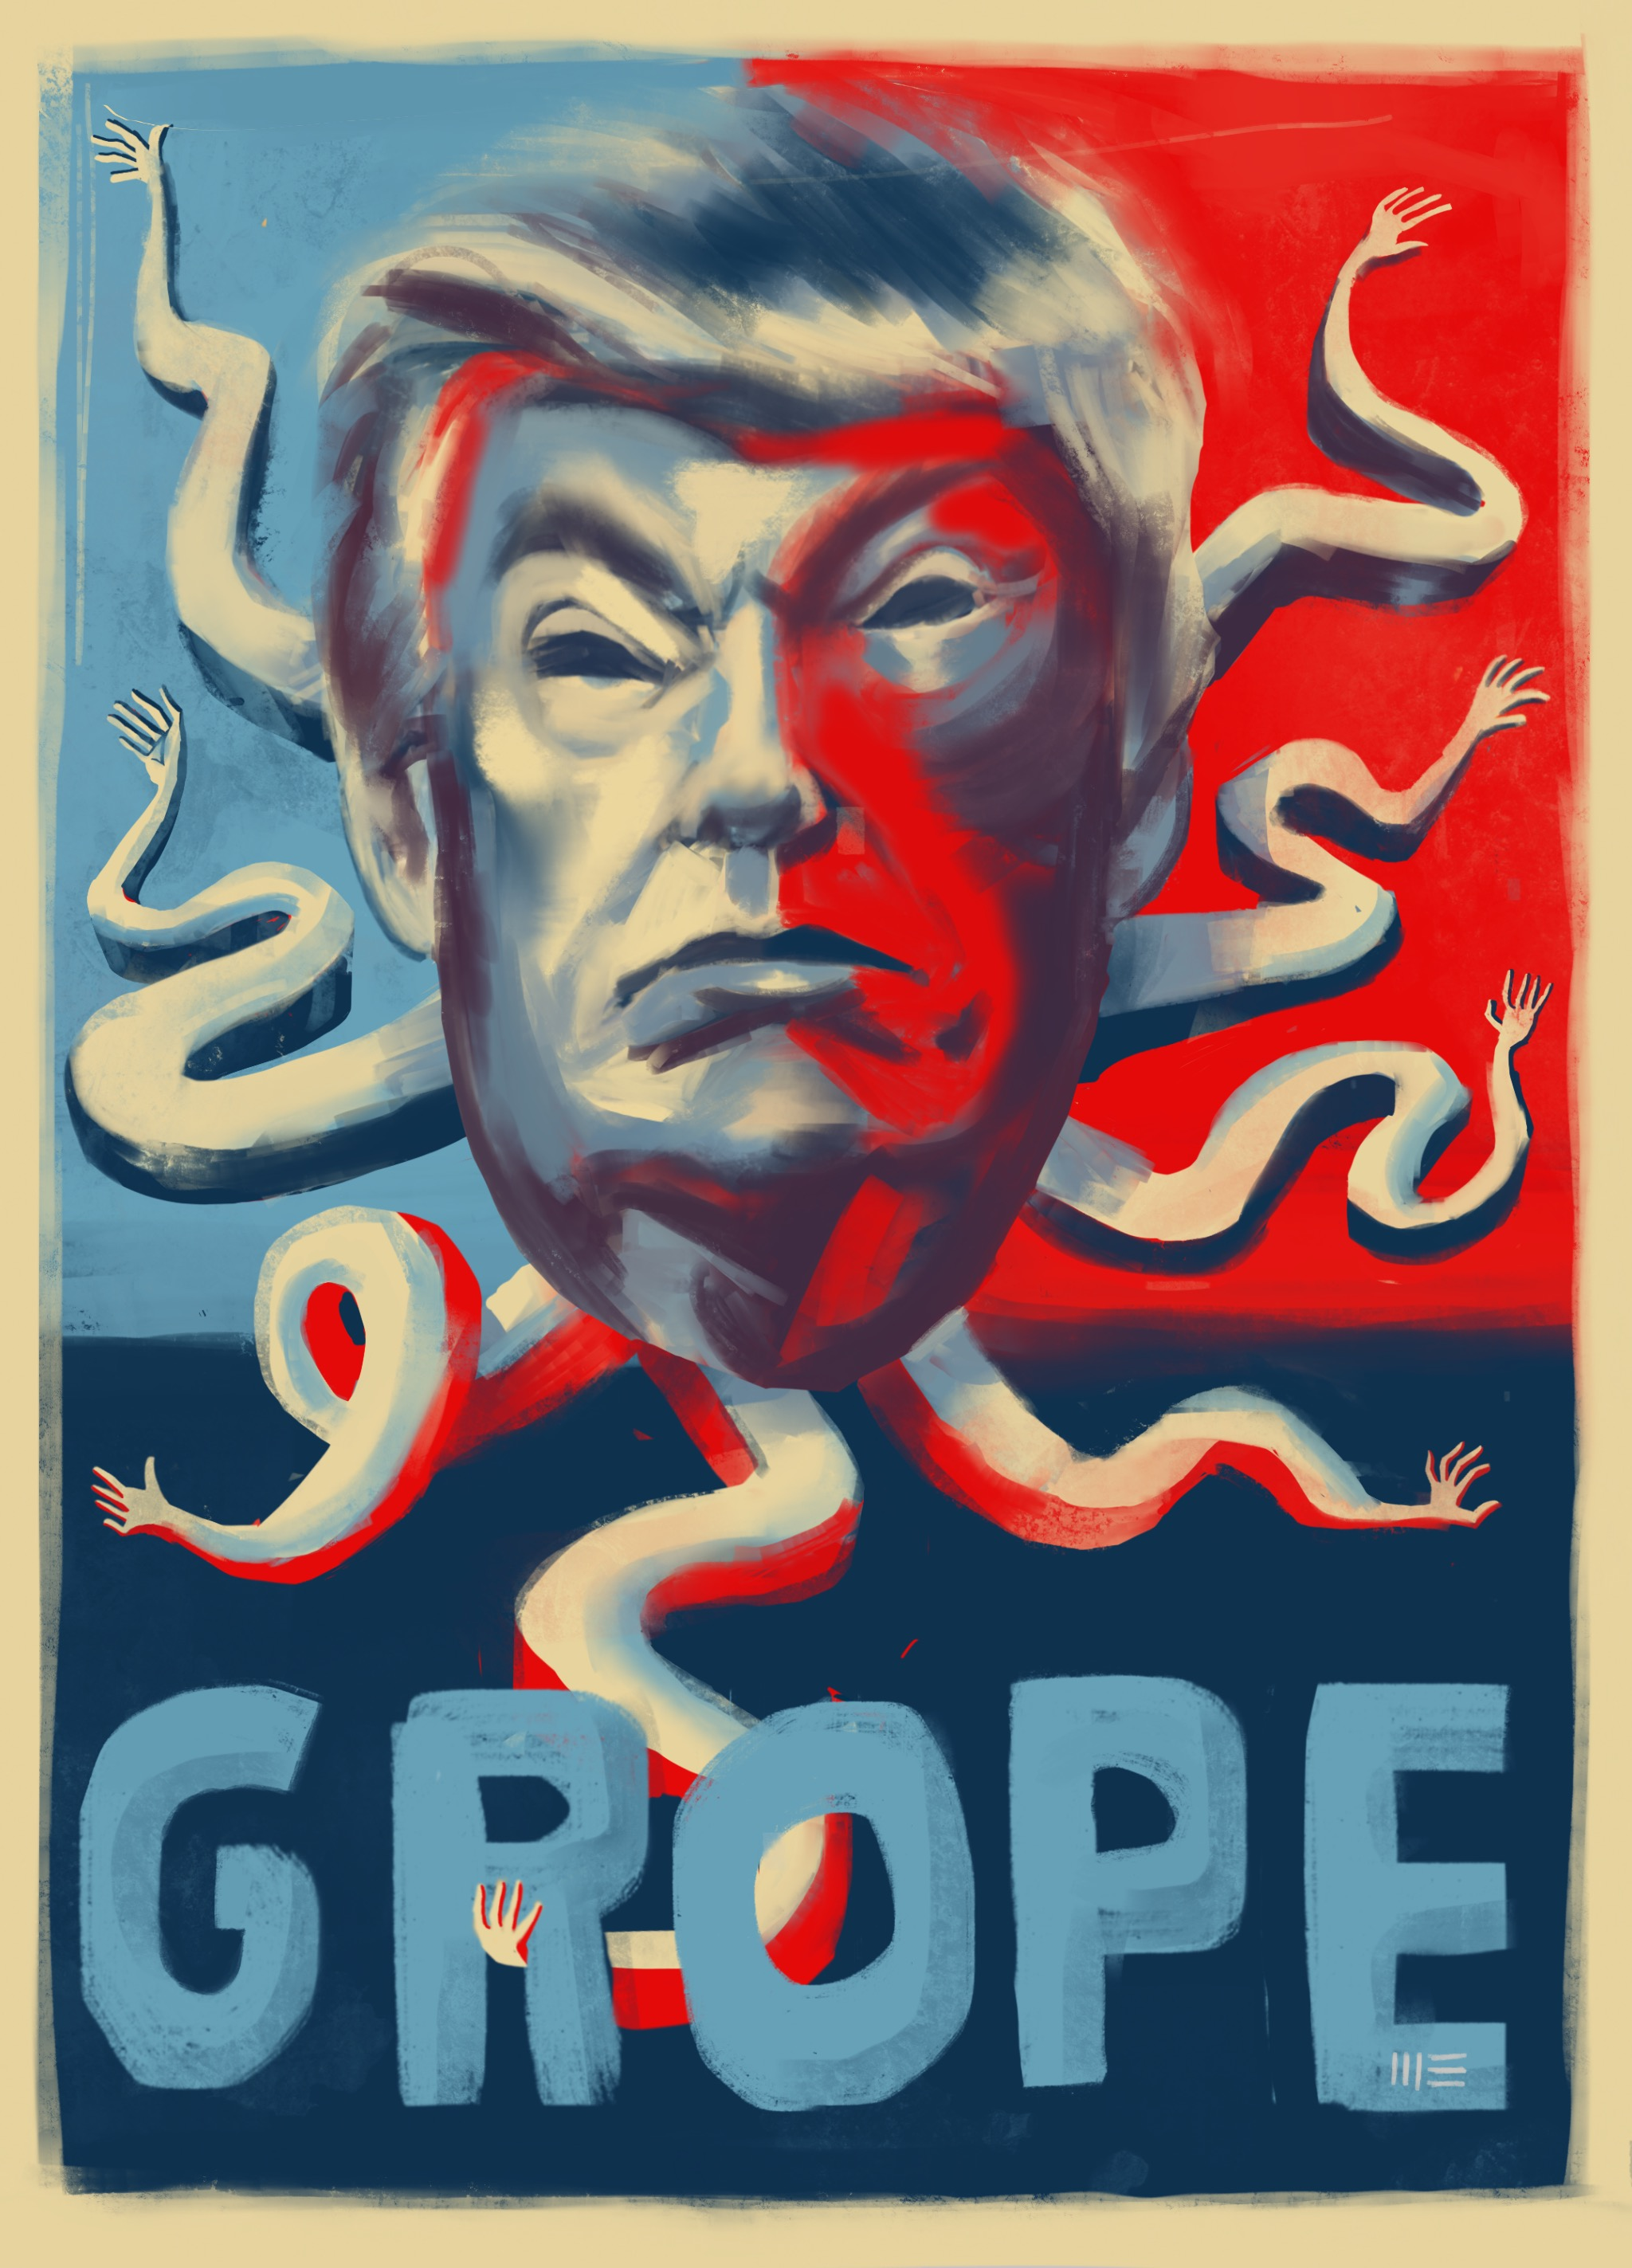 """""""Sir Gropes Alot""""  Trump Campaign Poster Suggestion. An update on the transcendent Obama 'Hope' presidential poster by Shepard Fairey which captured the spirit of his meteoric rise and tapped into the nation's psyche (or at least half of us anyway).  Trump of course has never faced this kind of scrutiny, but the things he said about women are both disgusting and truly reveal how out of synch with the world he is."""